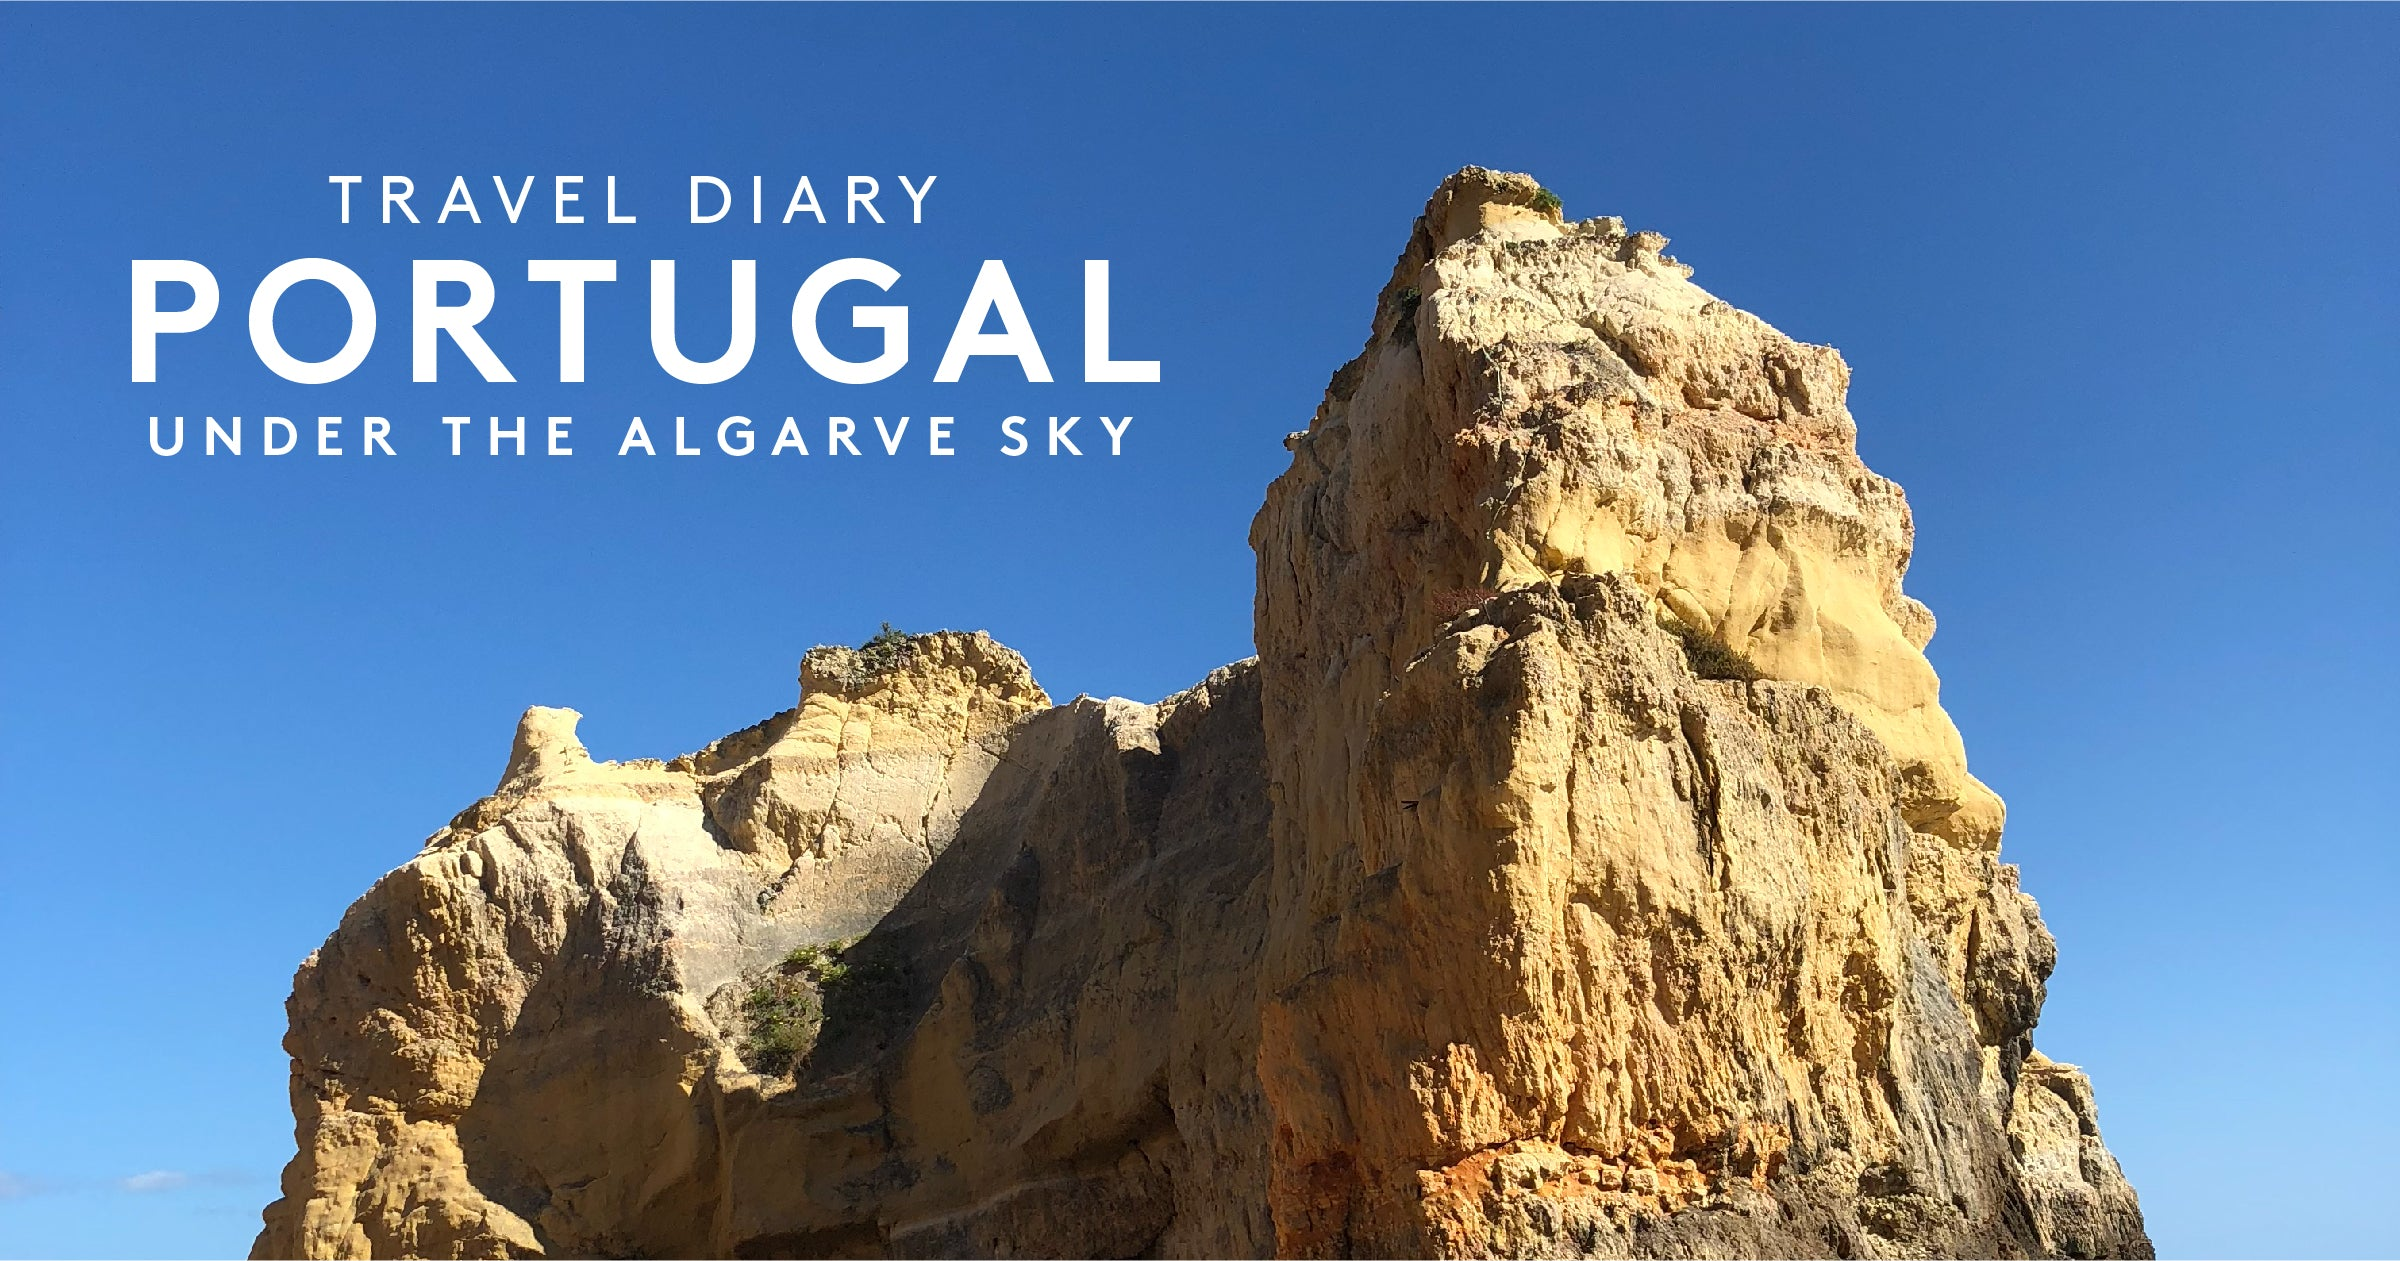 Travel Diary: Portugal - Under the Algarve Sky